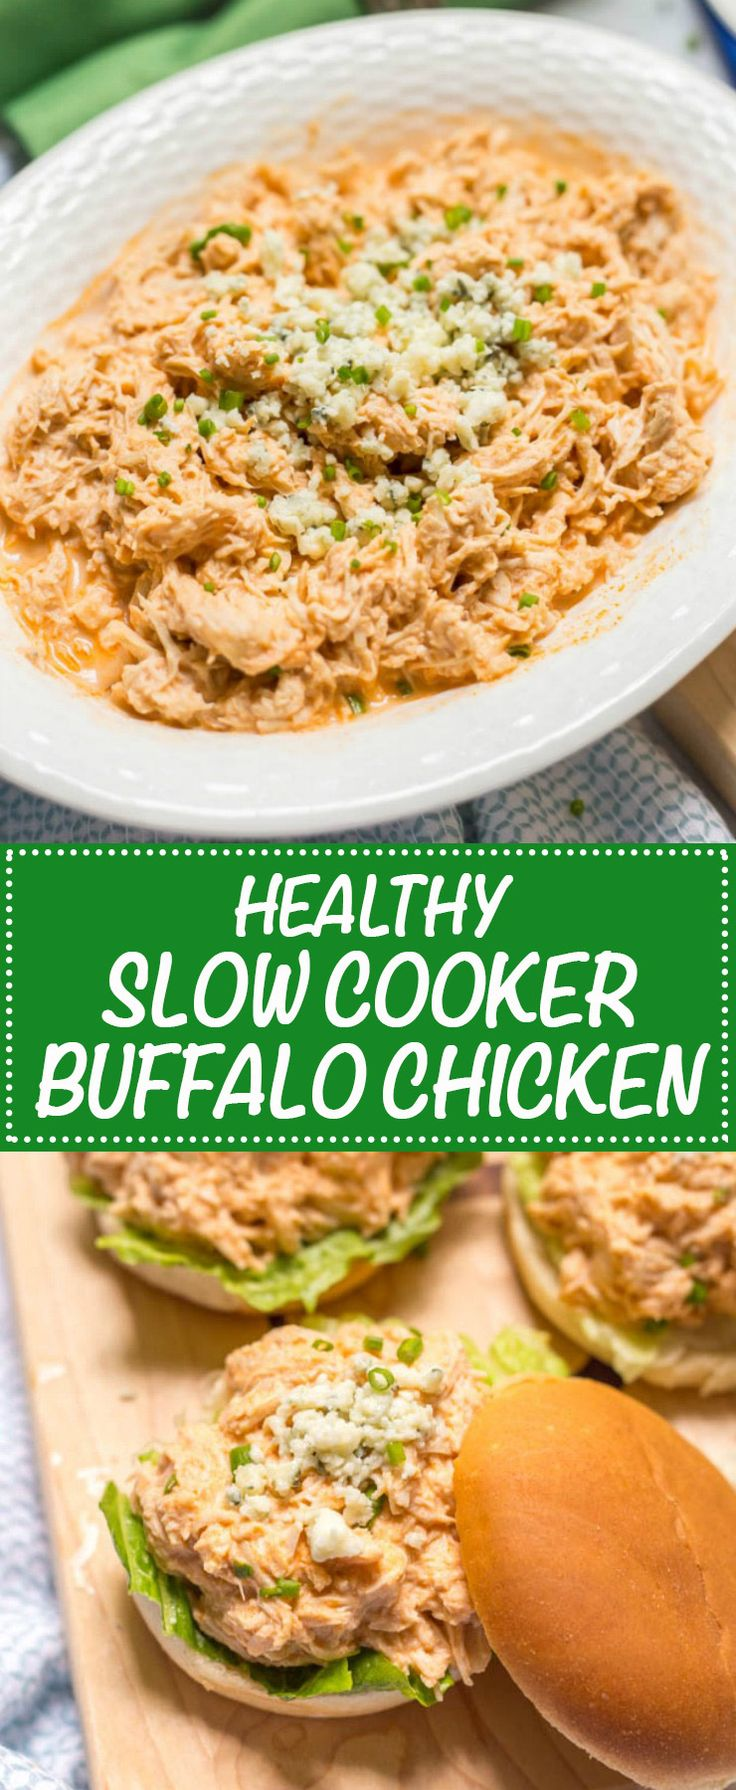 Healthy slow cooker buffalo chicken is lightened up (no butter!), takes minutes to prep and can be used for sandwiches, sliders, wraps, salads or nachos!